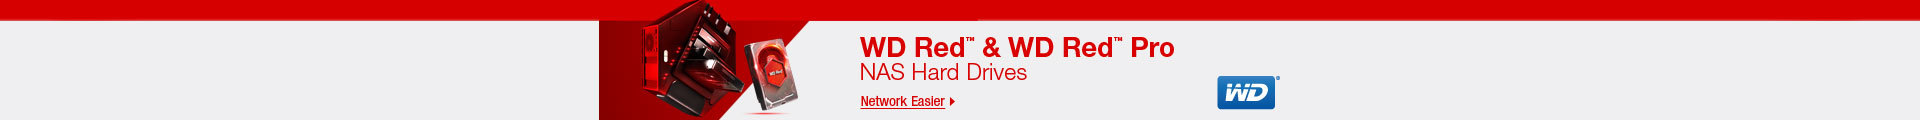 WD Red & WD Red Pro NAS Hard Drives